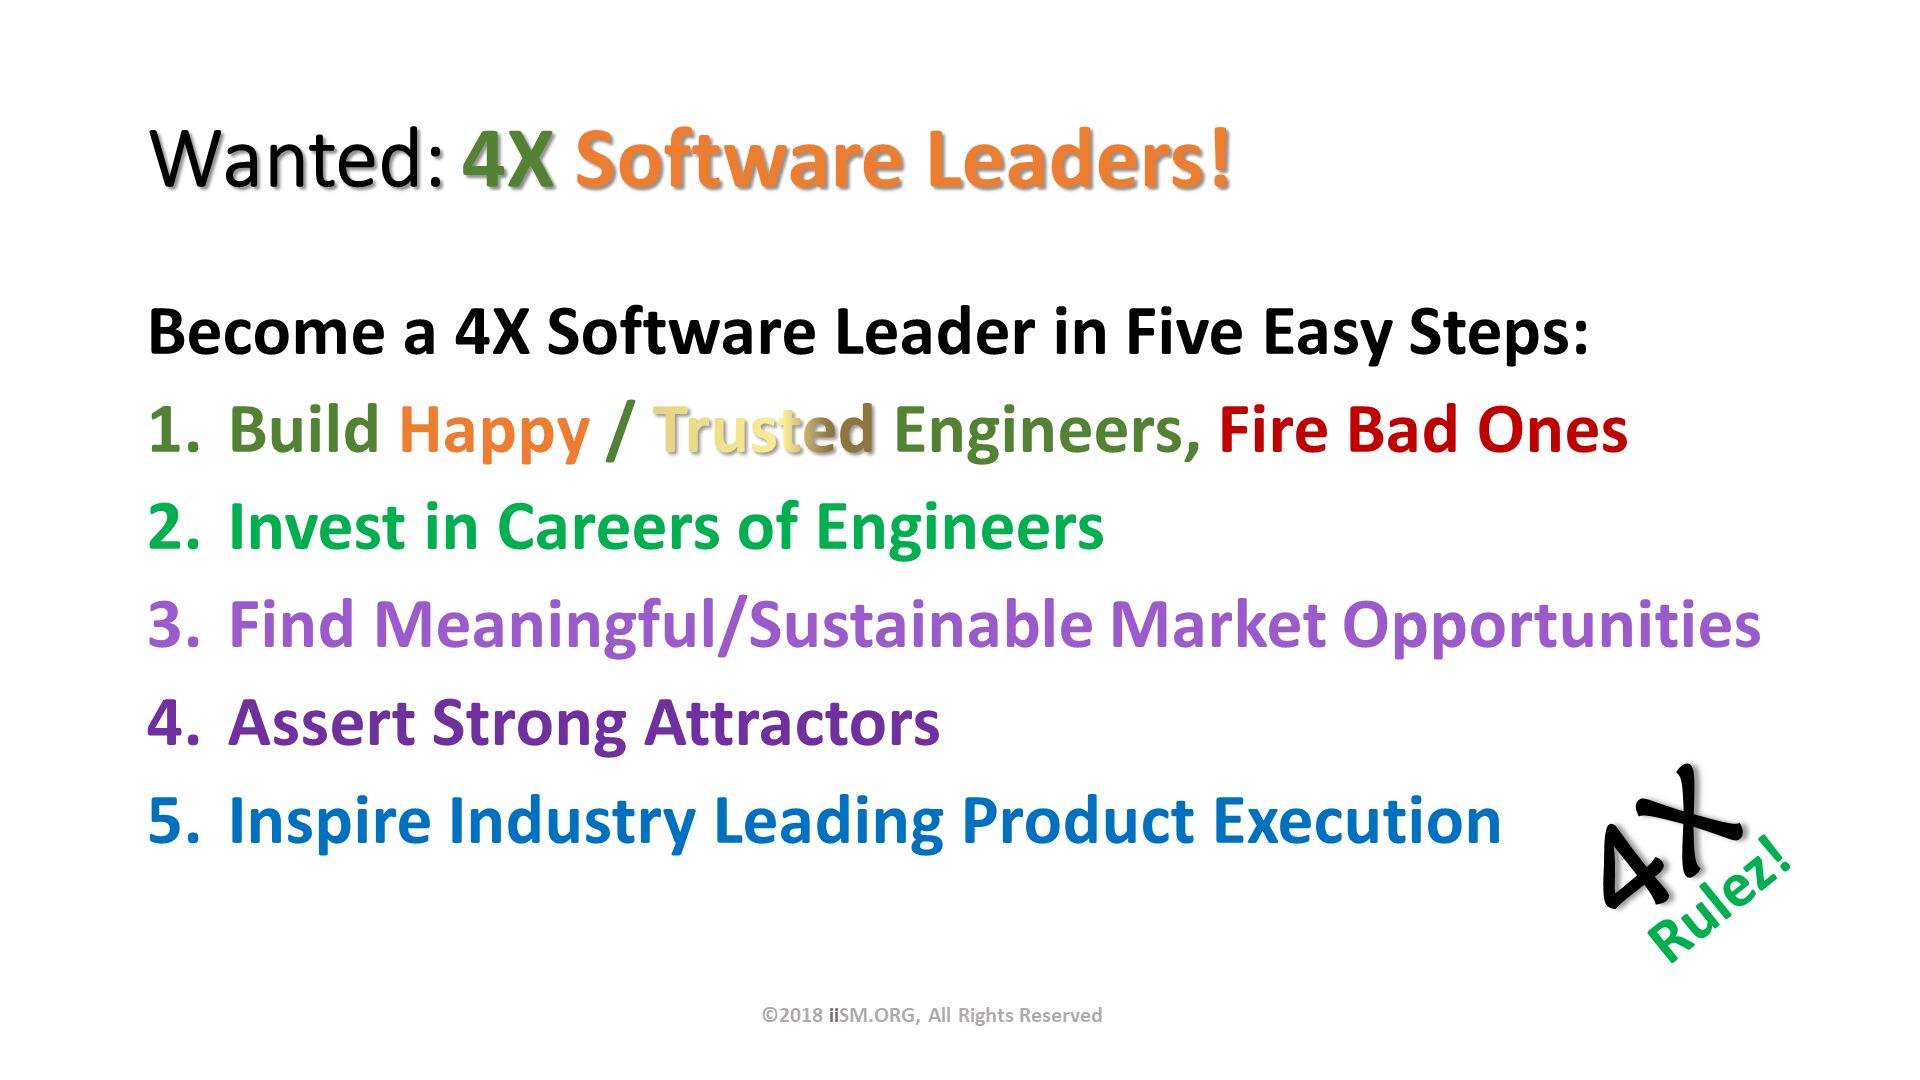 Wanted: 4X Software Leaders!. Become a 4X Software Leader in Five Easy Steps: Build Happy / Trusted Engineers, Fire Bad Ones Invest in Careers of Engineers Find Meaningful/Sustainable Market Opportunities Assert Strong Attractors Inspire Industry Leading Product Execution. ©2018 iiSM.ORG, All Rights Reserved.